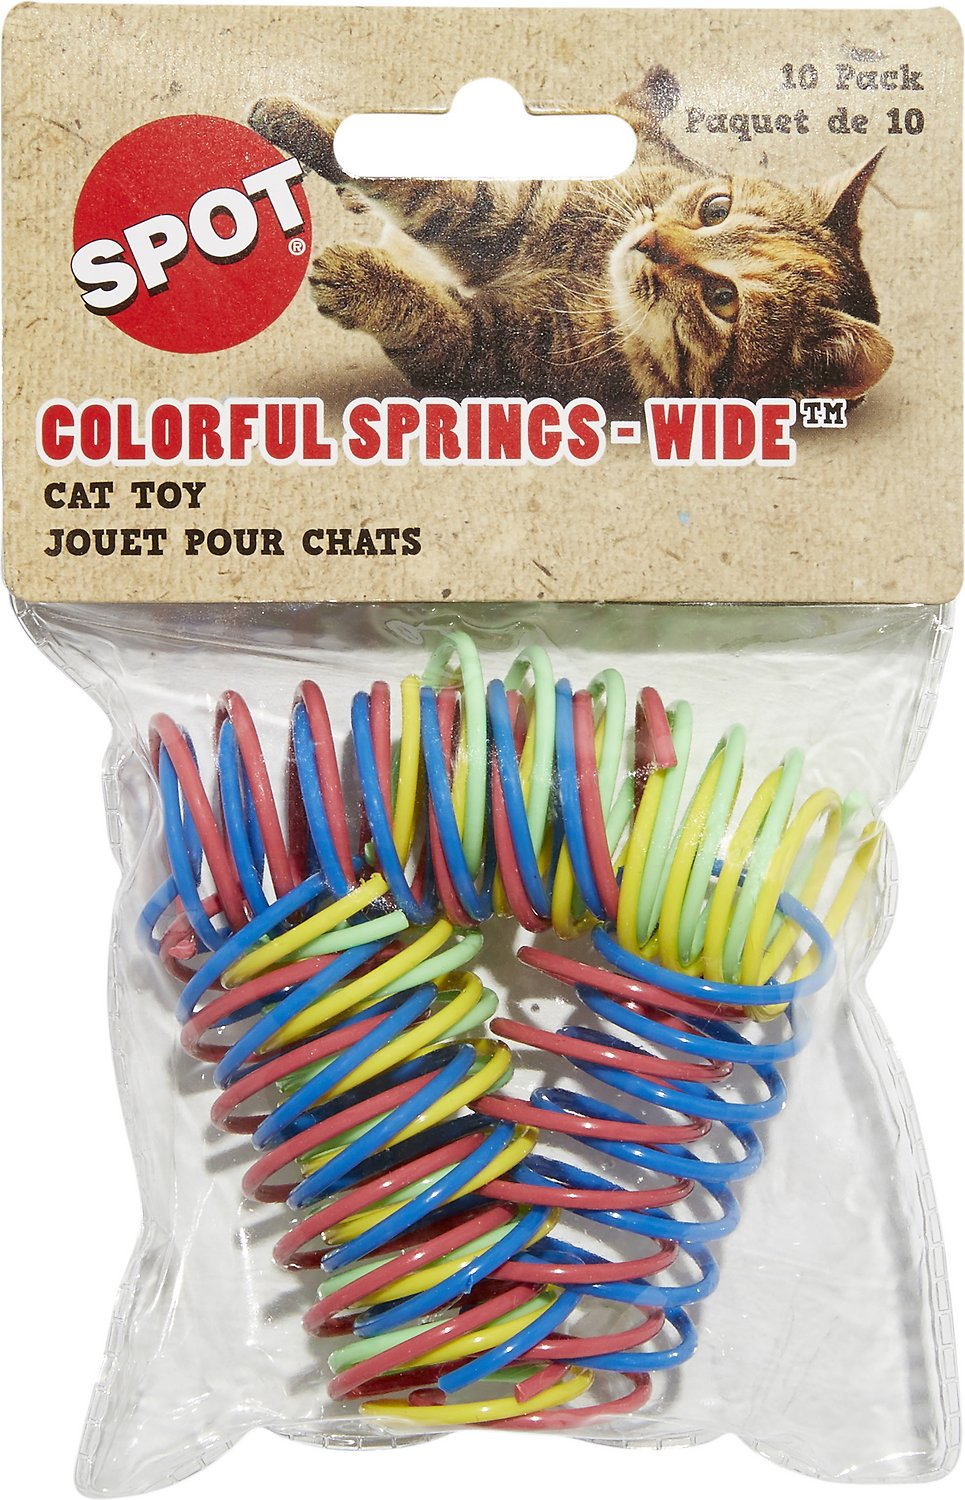 Bag of colorful plastic springs